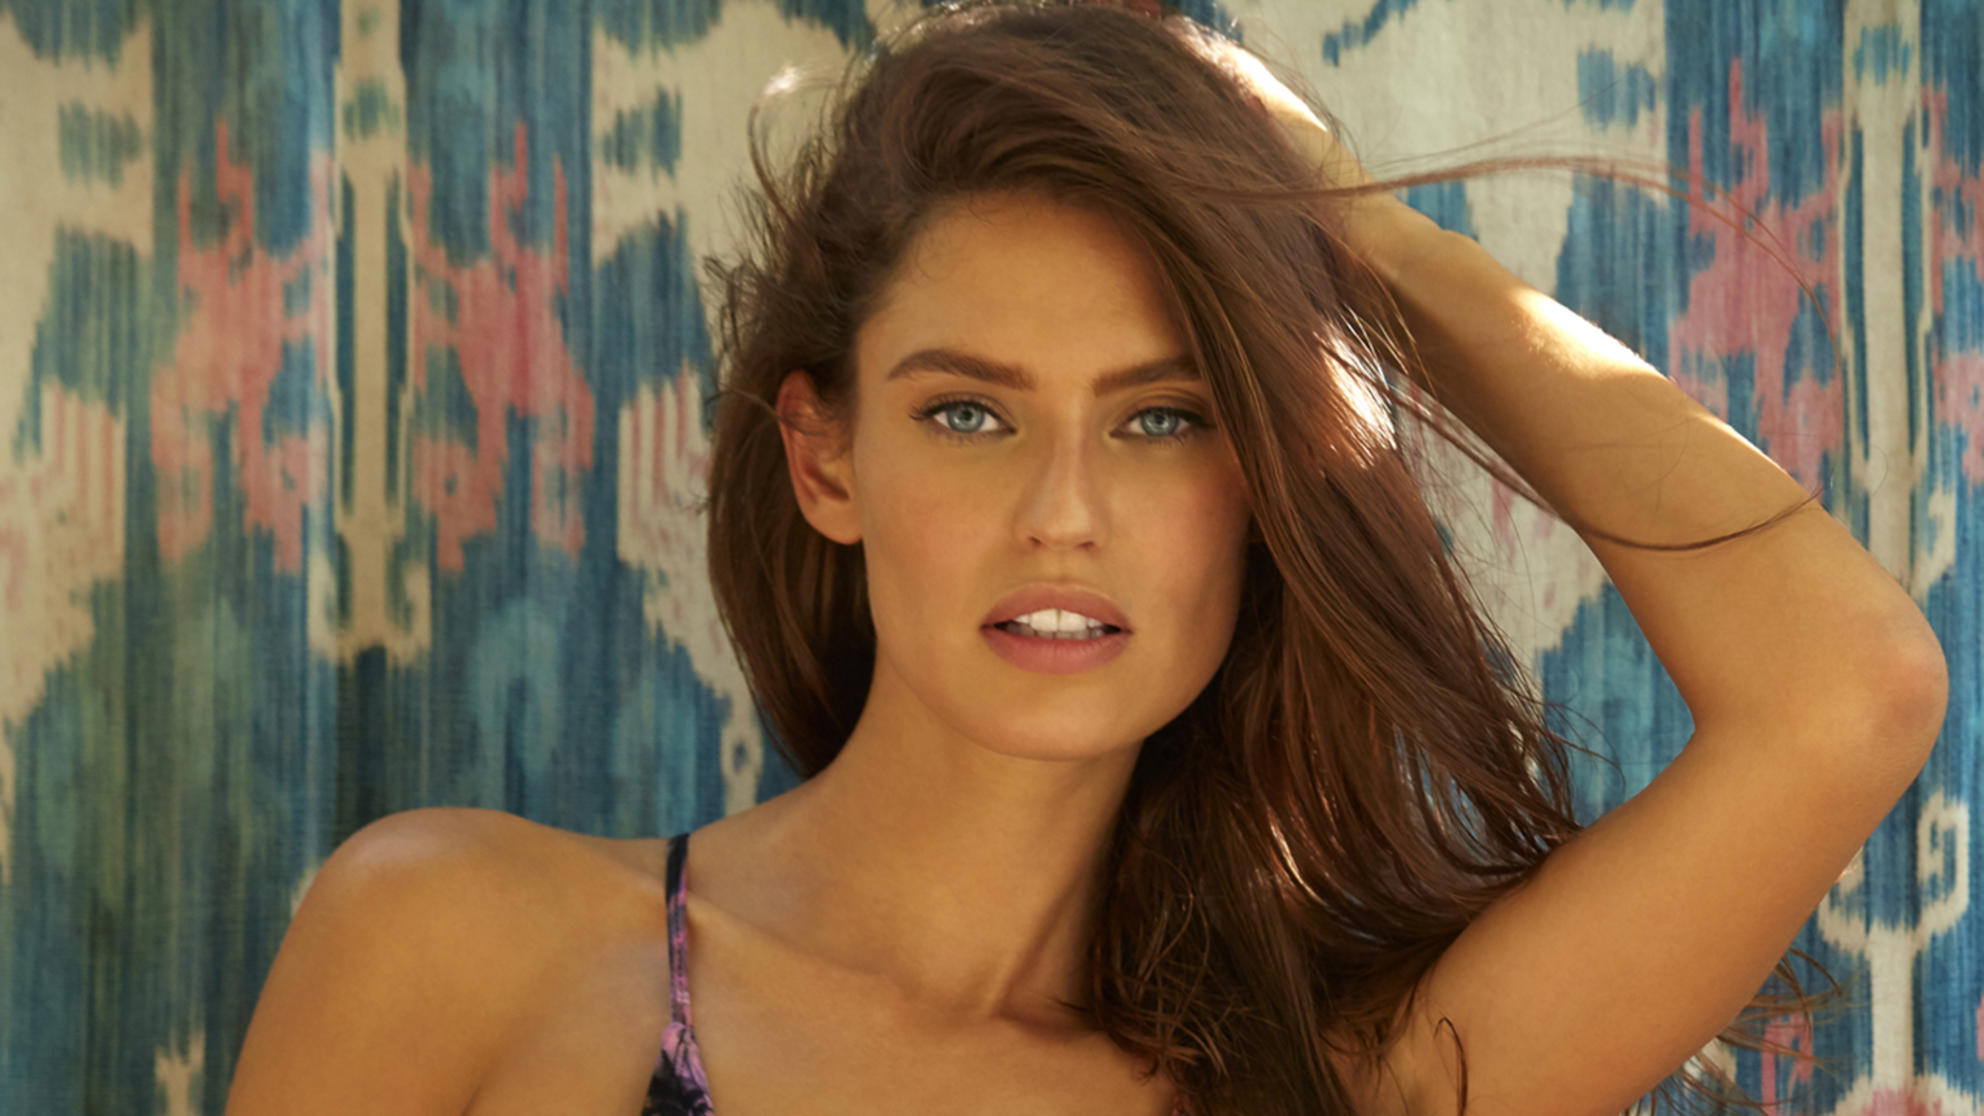 Sports Illustrated Swim Model Bianca Balti on Losing 50 Lbs. After Baby: 'Realistically It Takes About a Year'